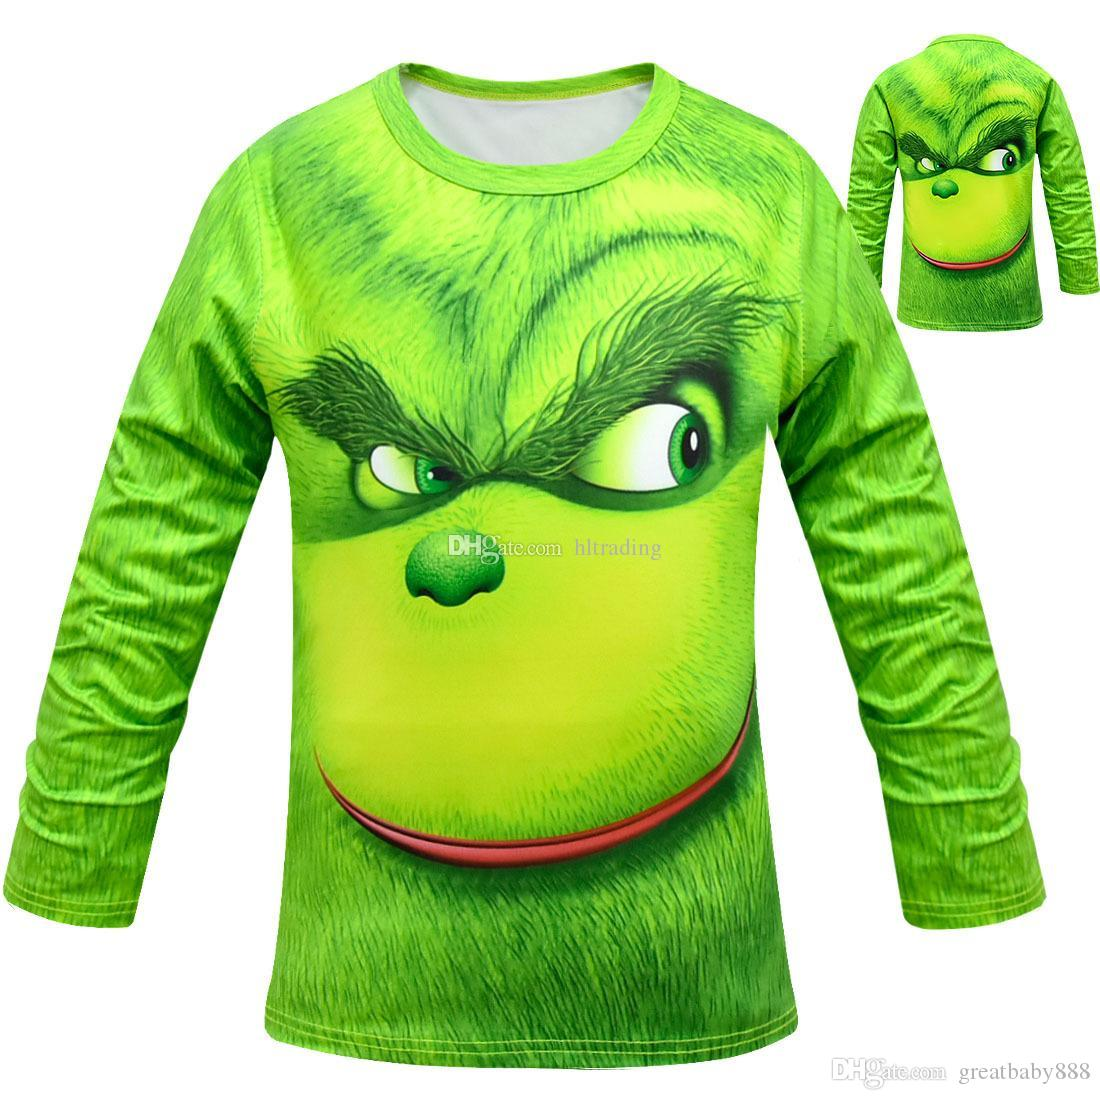 Baby Boys The Grinch Print T Shirts Spring Autumn Tops Cotton Children Tees Kids Clothing C5676 Online With